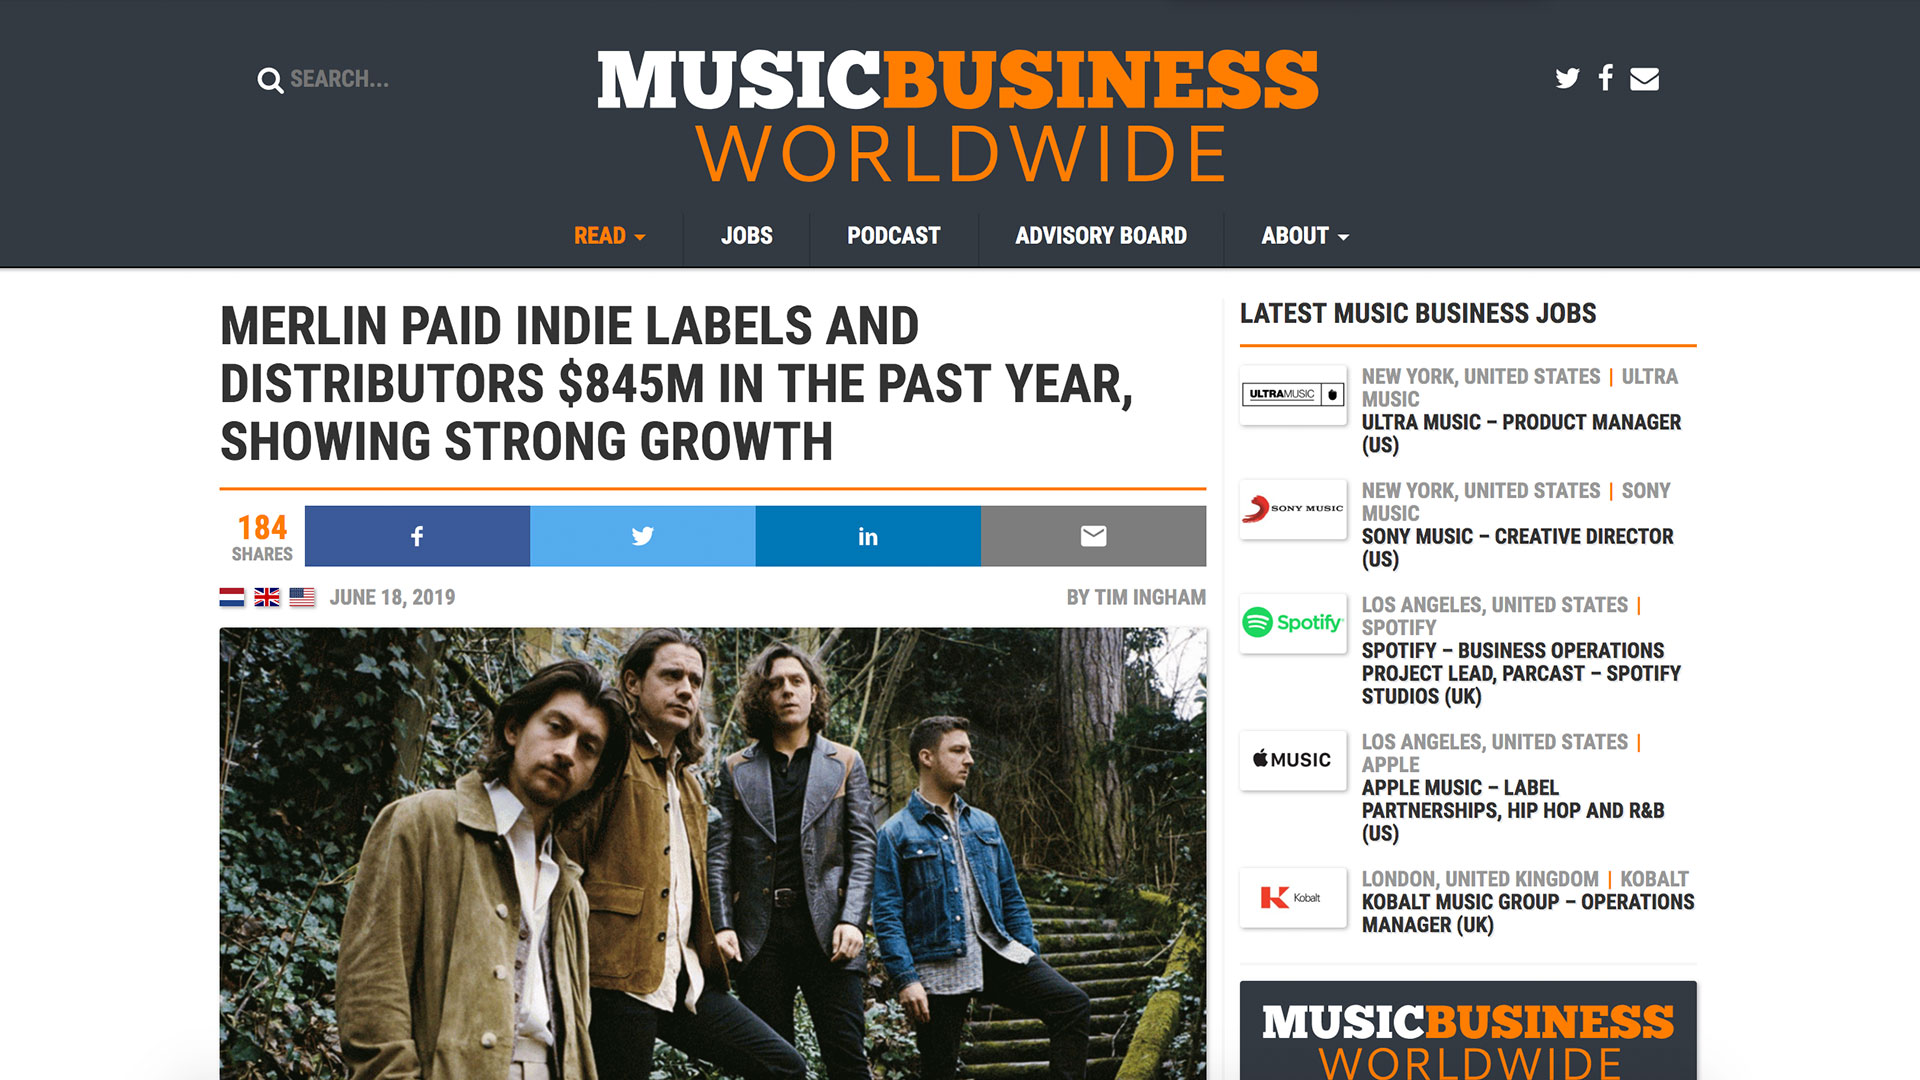 Fairness Rocks News MERLIN PAID INDIE LABELS AND DISTRIBUTORS $845M IN THE PAST YEAR, SHOWING STRONG GROWTH